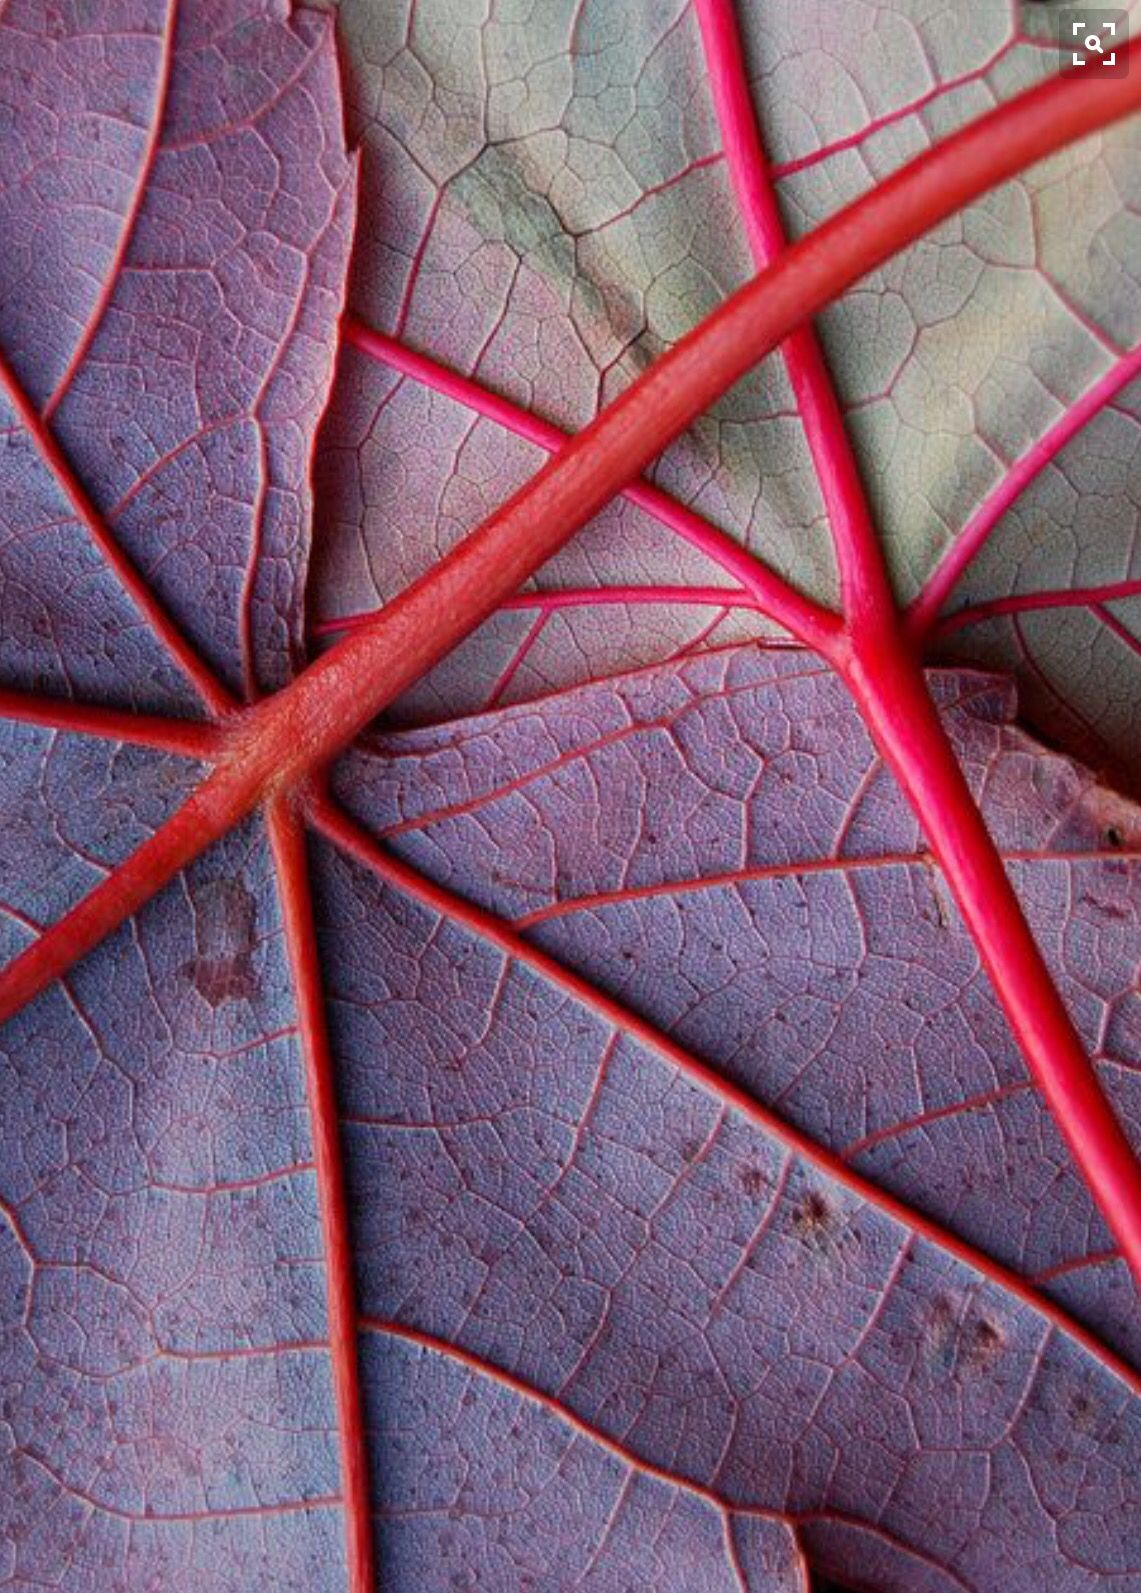 Colors Patterns In Nature Textures Patterns Nature Art